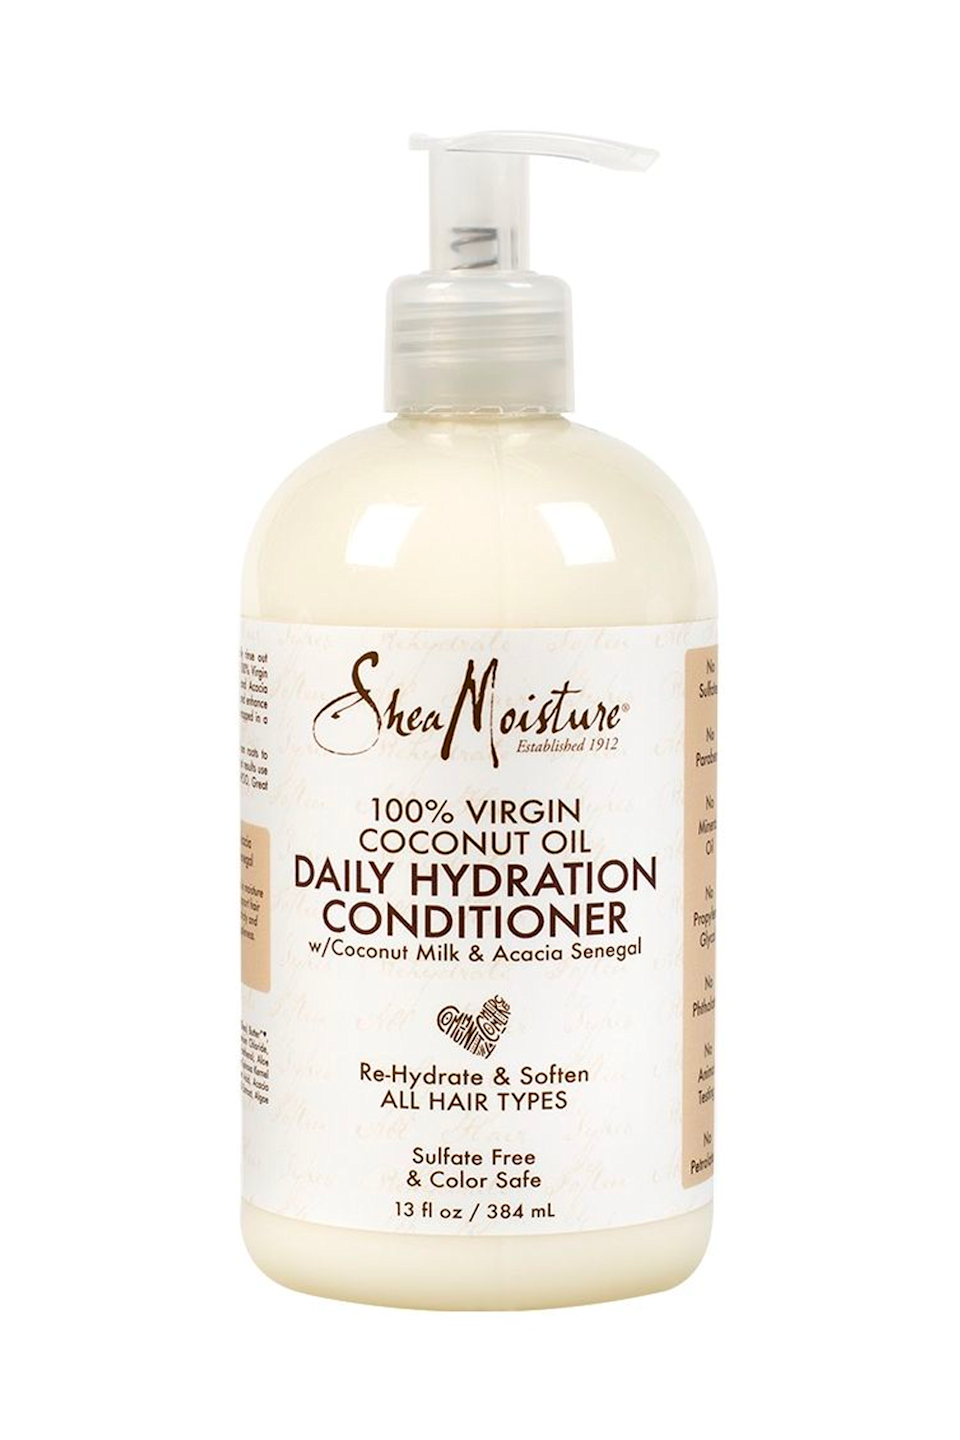 """<p><strong>SheaMoisture</strong></p><p>amazon.com</p><p><strong>$10.68</strong></p><p><a href=""""https://www.amazon.com/dp/B01NCZES6L?tag=syn-yahoo-20&ascsubtag=%5Bartid%7C10049.g.35265911%5Bsrc%7Cyahoo-us"""" rel=""""nofollow noopener"""" target=""""_blank"""" data-ylk=""""slk:Shop Now"""" class=""""link rapid-noclick-resp"""">Shop Now</a></p><p>JSYK, using a cleansing conditioner doesn't mean you can skip out on <em>actual</em> conditioner. After cleansing or rinsing, work this coconut oil formula through your hair from roots to ends, gently detangling with a <a href=""""https://www.amazon.com/HYOUJIN-Detangling-Handgrip-Comb-Best-Styling/dp/B0744CXZD3/?tag=syn-yahoo-20&ascsubtag=%5Bartid%7C10049.g.35265911%5Bsrc%7Cyahoo-us"""" rel=""""nofollow noopener"""" target=""""_blank"""" data-ylk=""""slk:wide-tooth comb"""" class=""""link rapid-noclick-resp"""">wide-tooth comb</a>. This bb is super lightweight—so<strong> n</strong><strong>o need to worry about any greasy residues</strong>.</p>"""